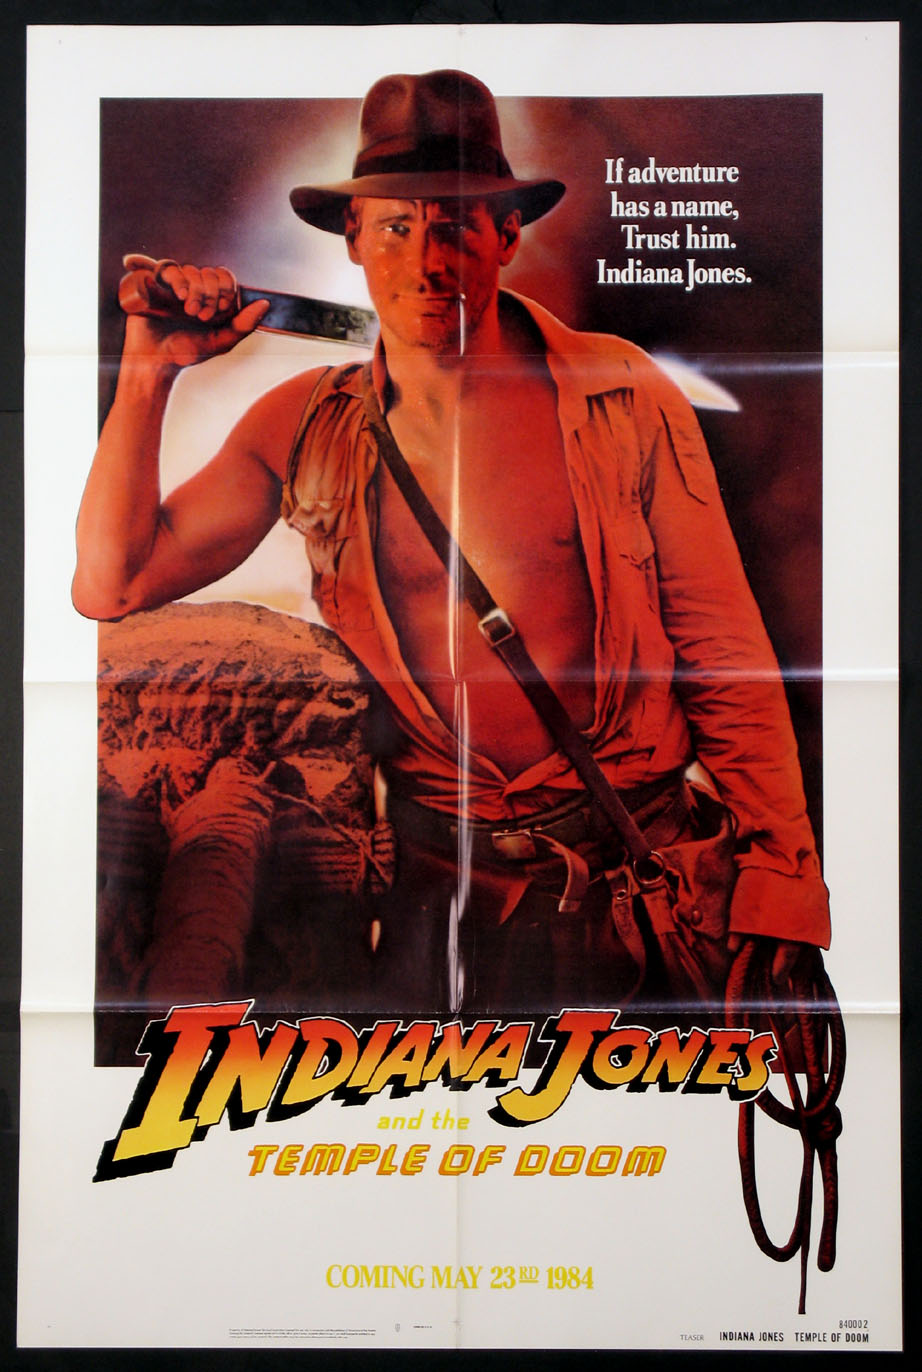 INDIANA JONES AND THE TEMPLE OF DOOM @ FilmPosters.com